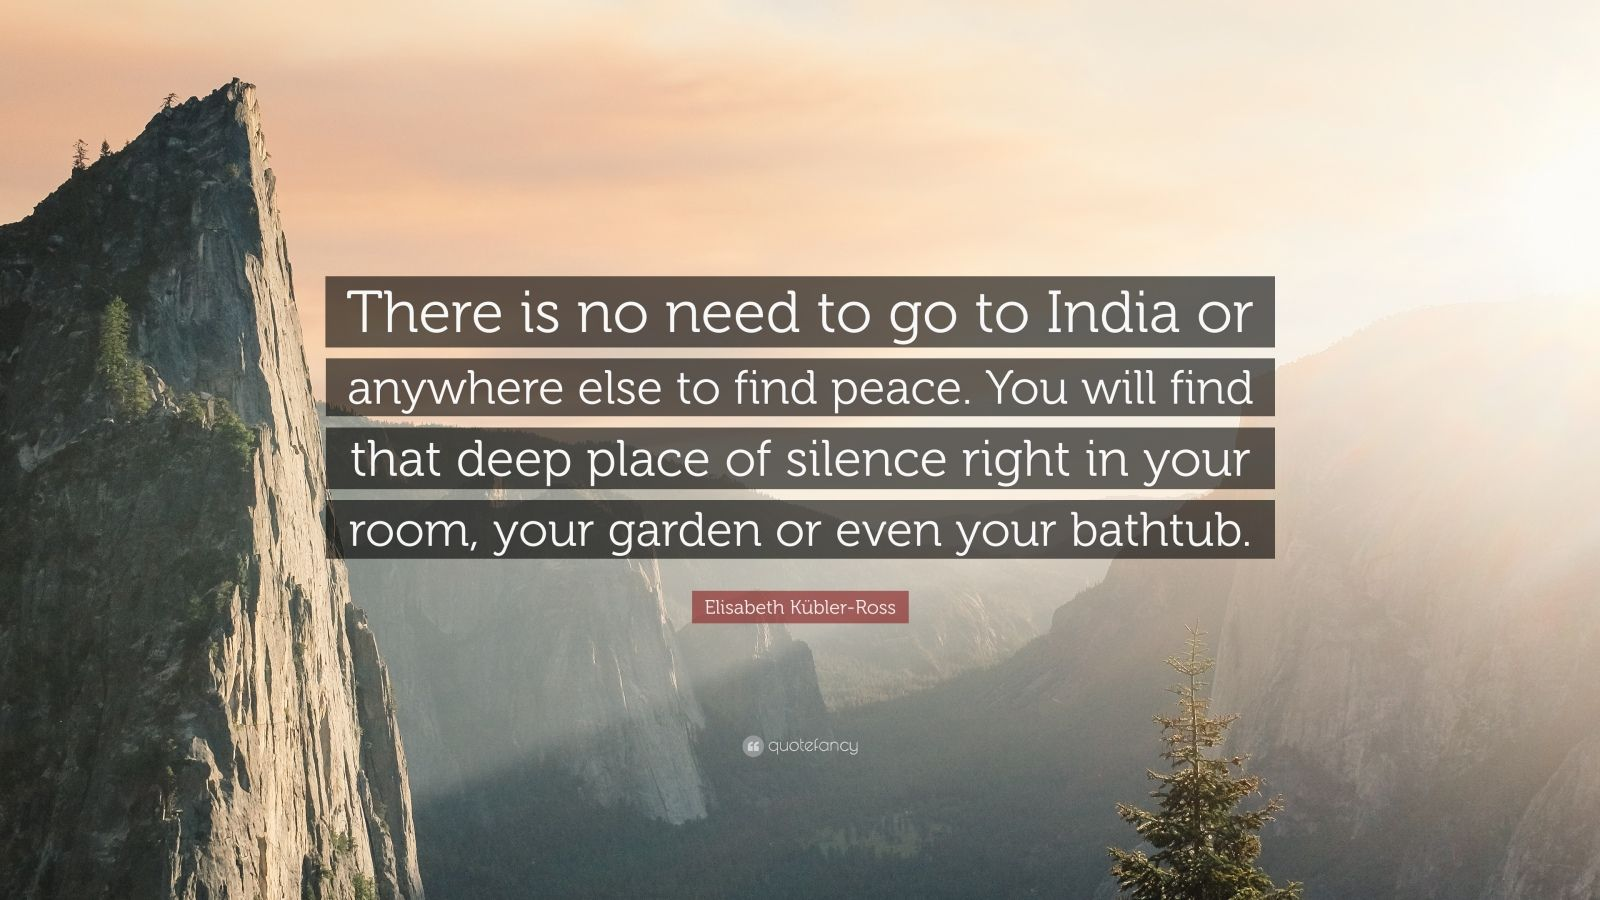 """Elisabeth Kübler-Ross Quote: """"There is no need to go to India or anywhere else to find peace. You will find that deep place of silence right in your room, your garden or even your bathtub."""""""